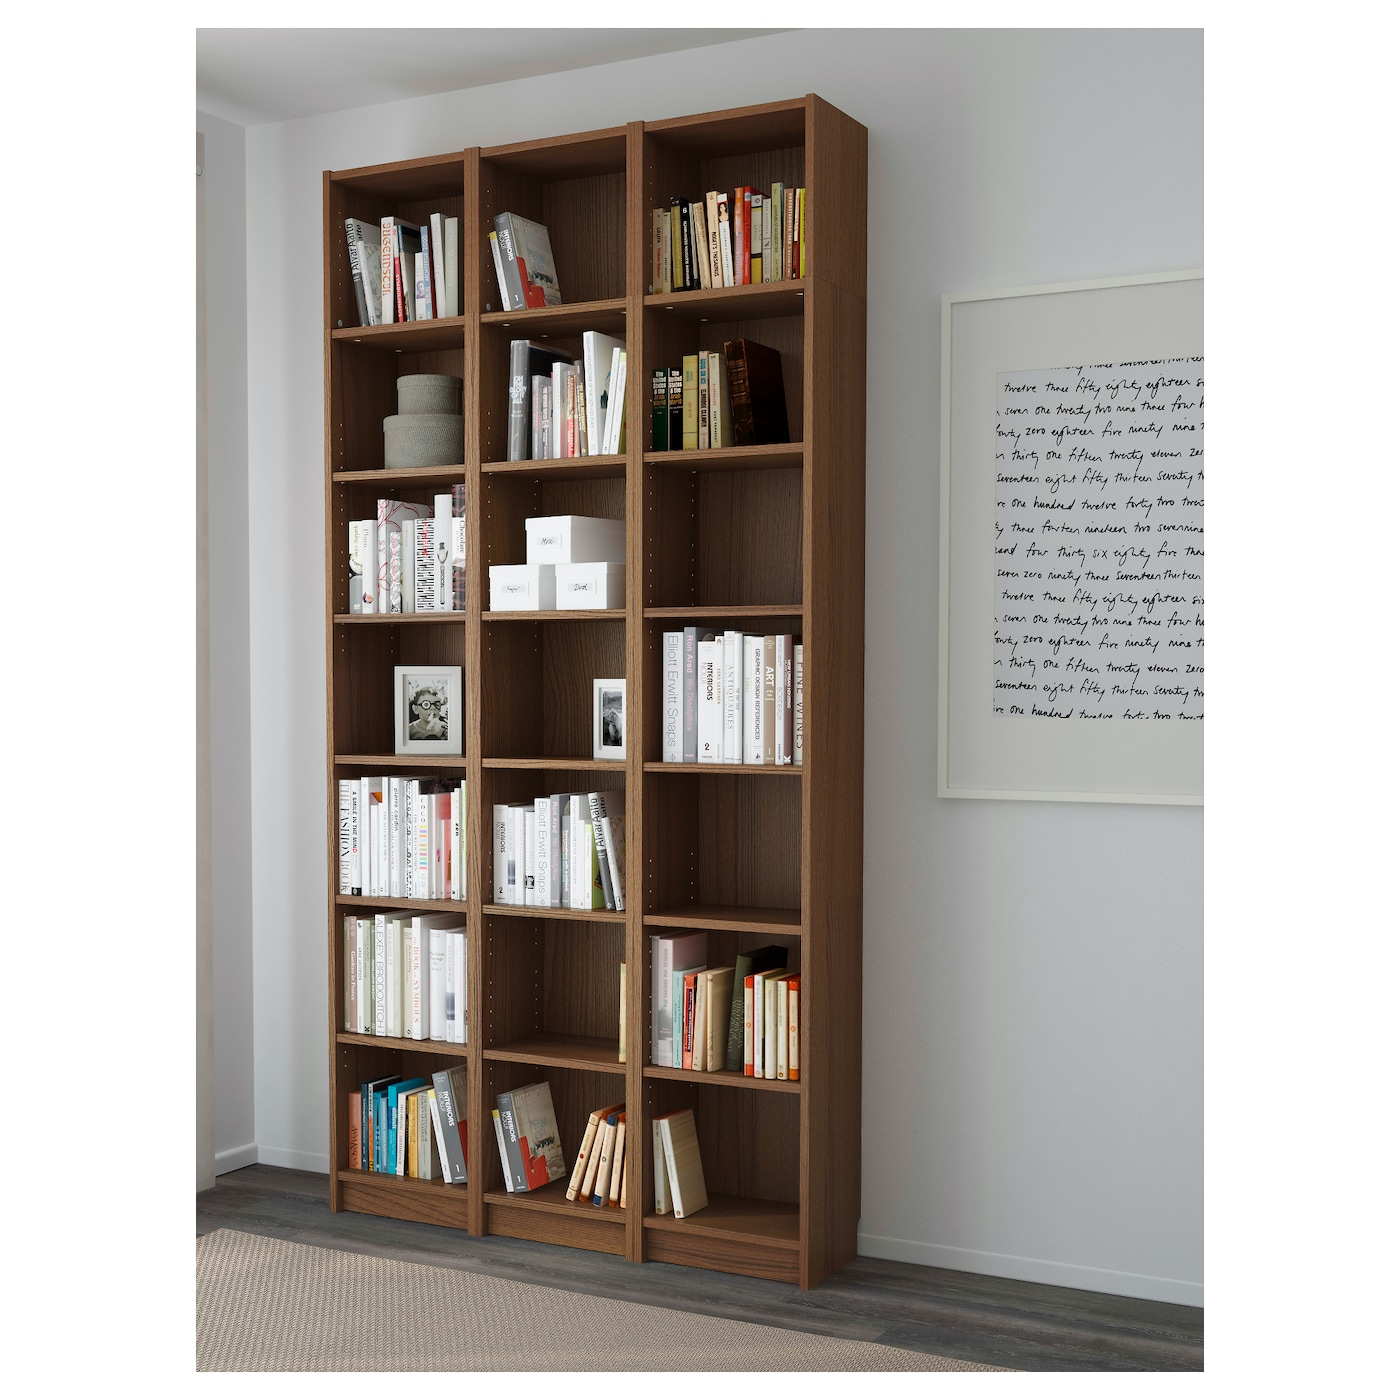 Billy bookcase brown ash veneer 120x237x28 cm ikea - Eclairage bibliotheque ikea ...